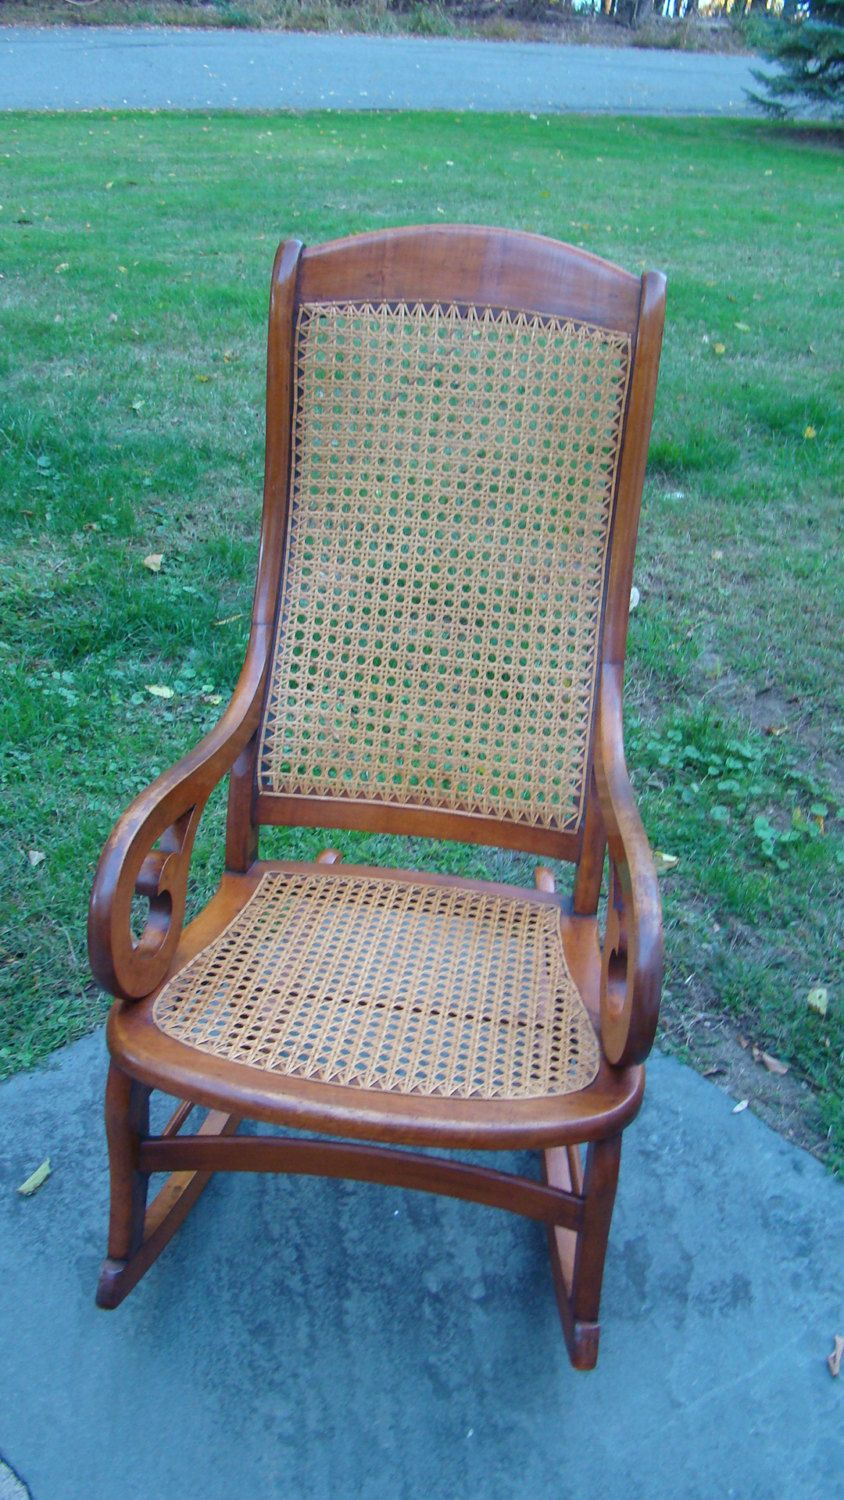 Antique sewing chair - Early 1900s Antique Victorian Maple Lincoln Rocker Rocking Wooden Cane Chair Sewing Nursing Baby By Lifessoulmission